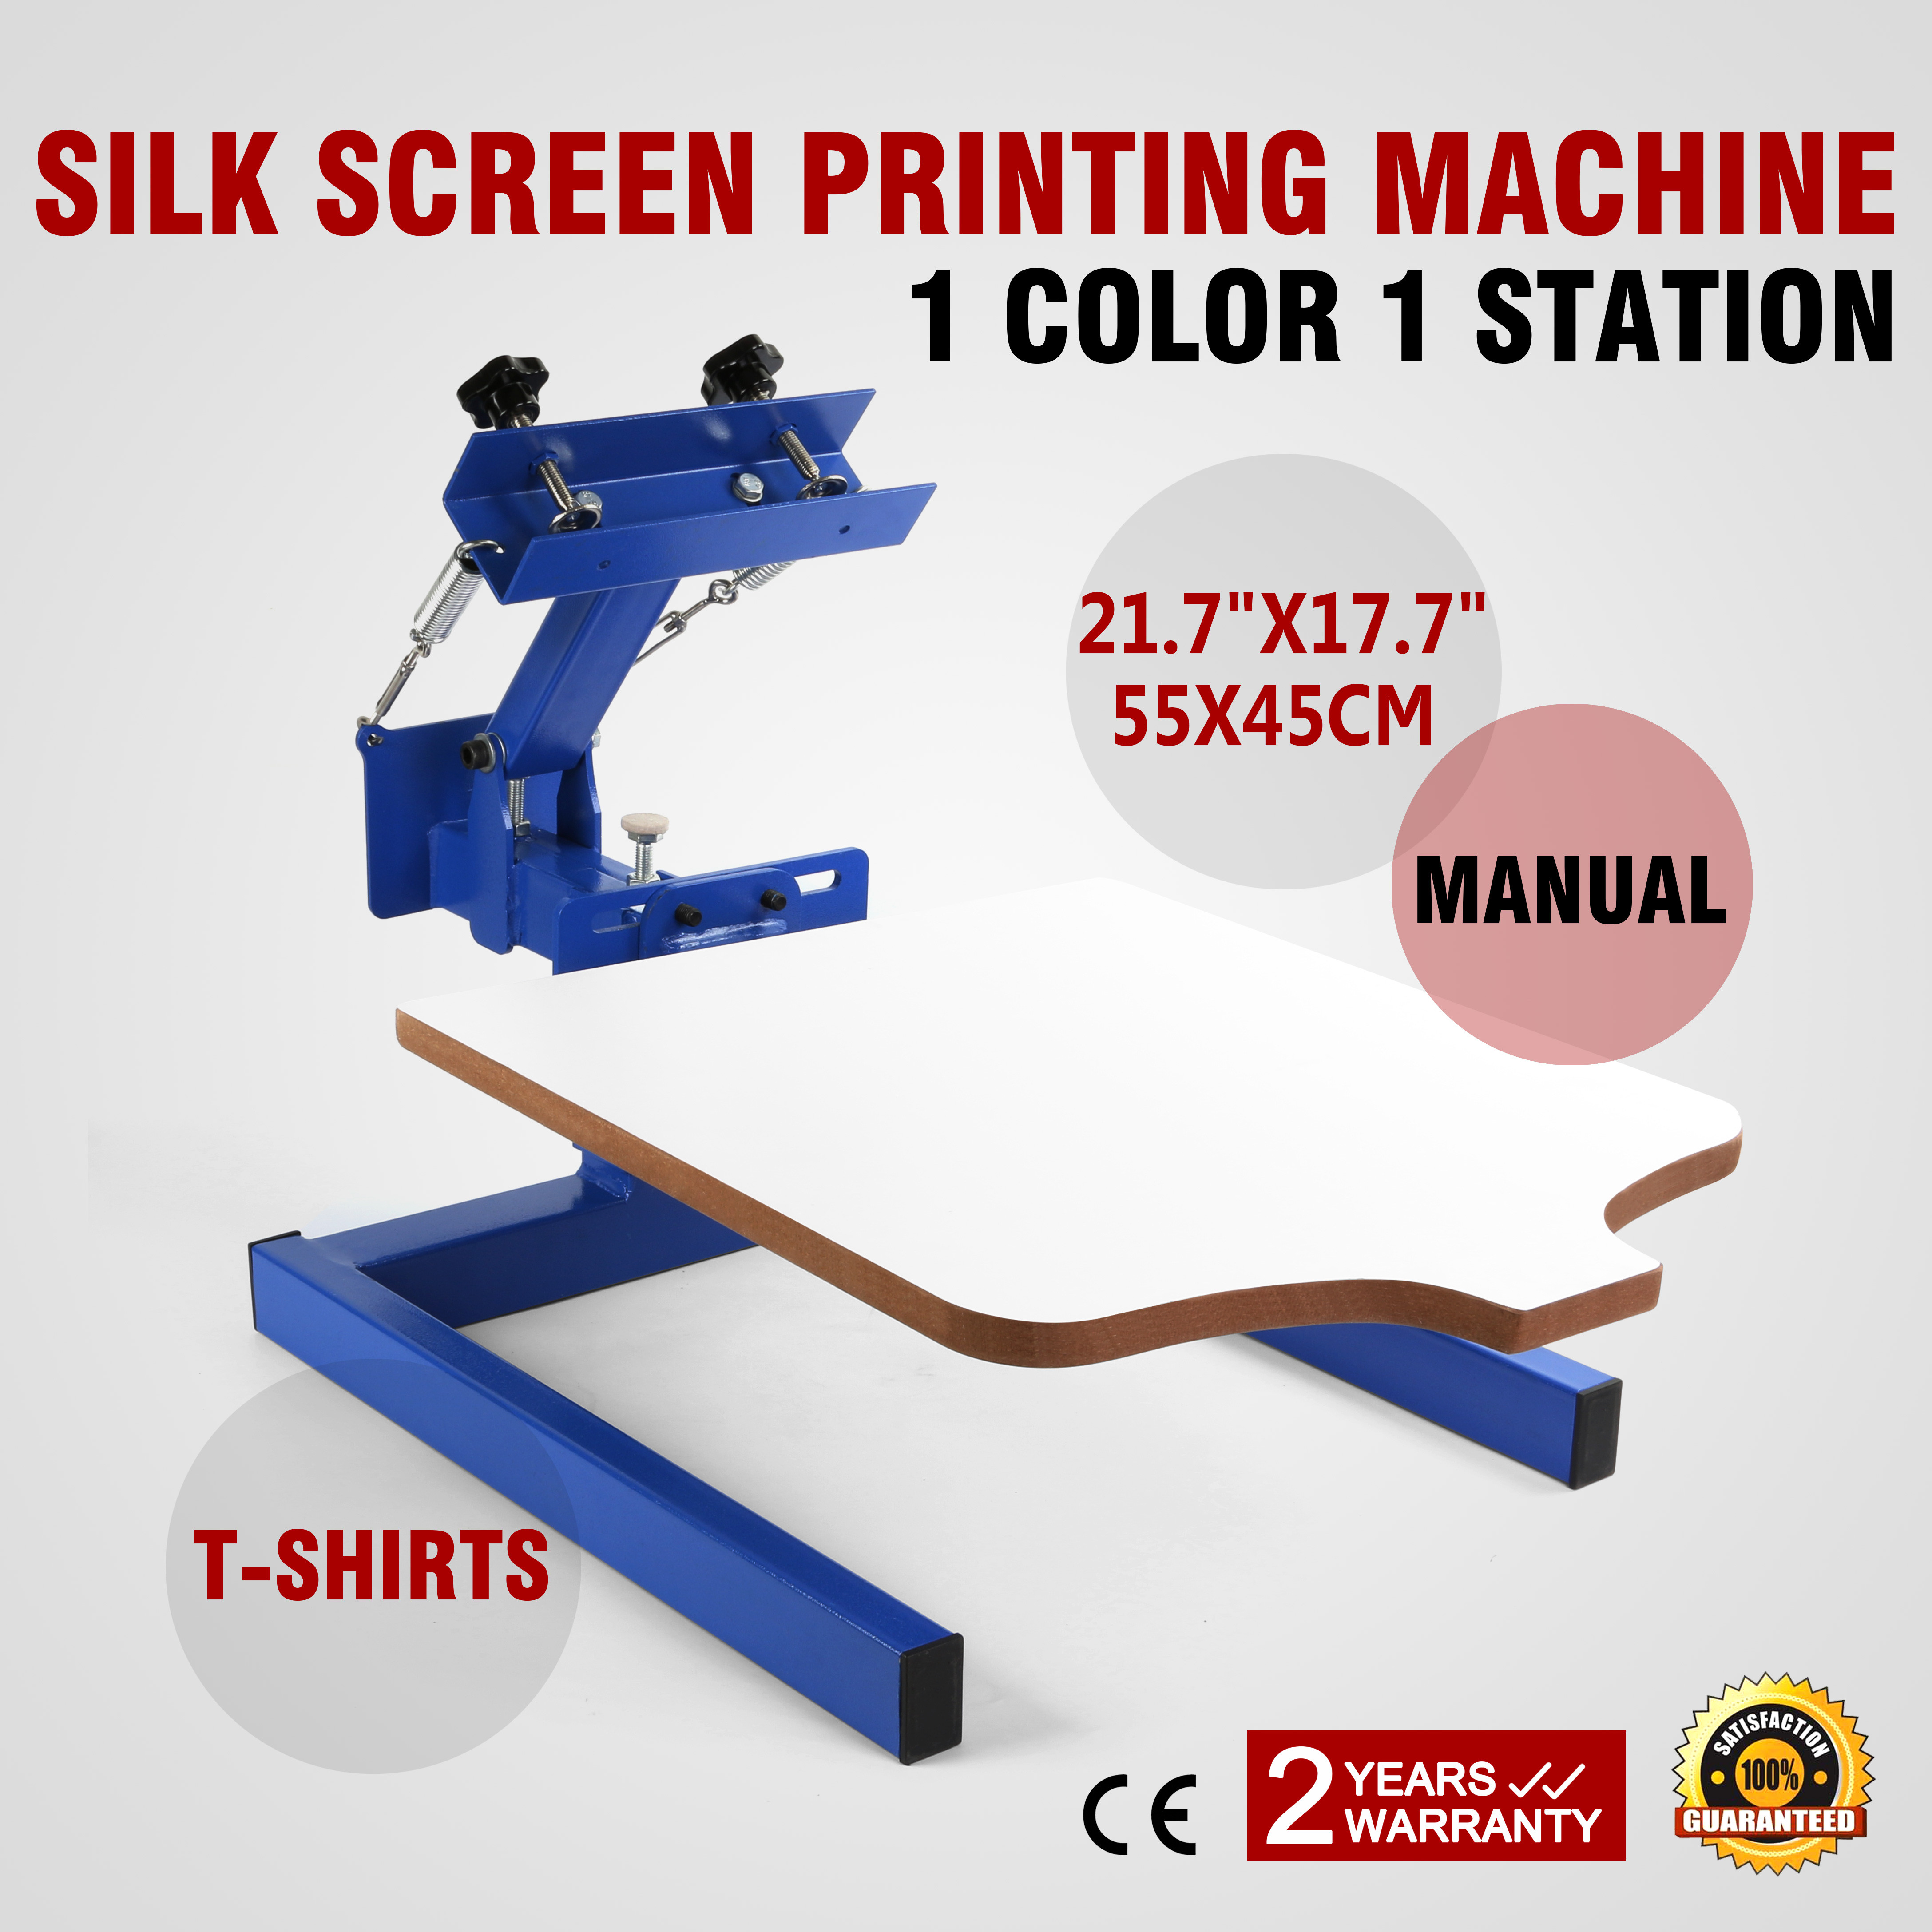 a01bcd0f0 Details about 1 Color 1 Station Silk Screen Printing Machine Press Printer T -Shirt Printing